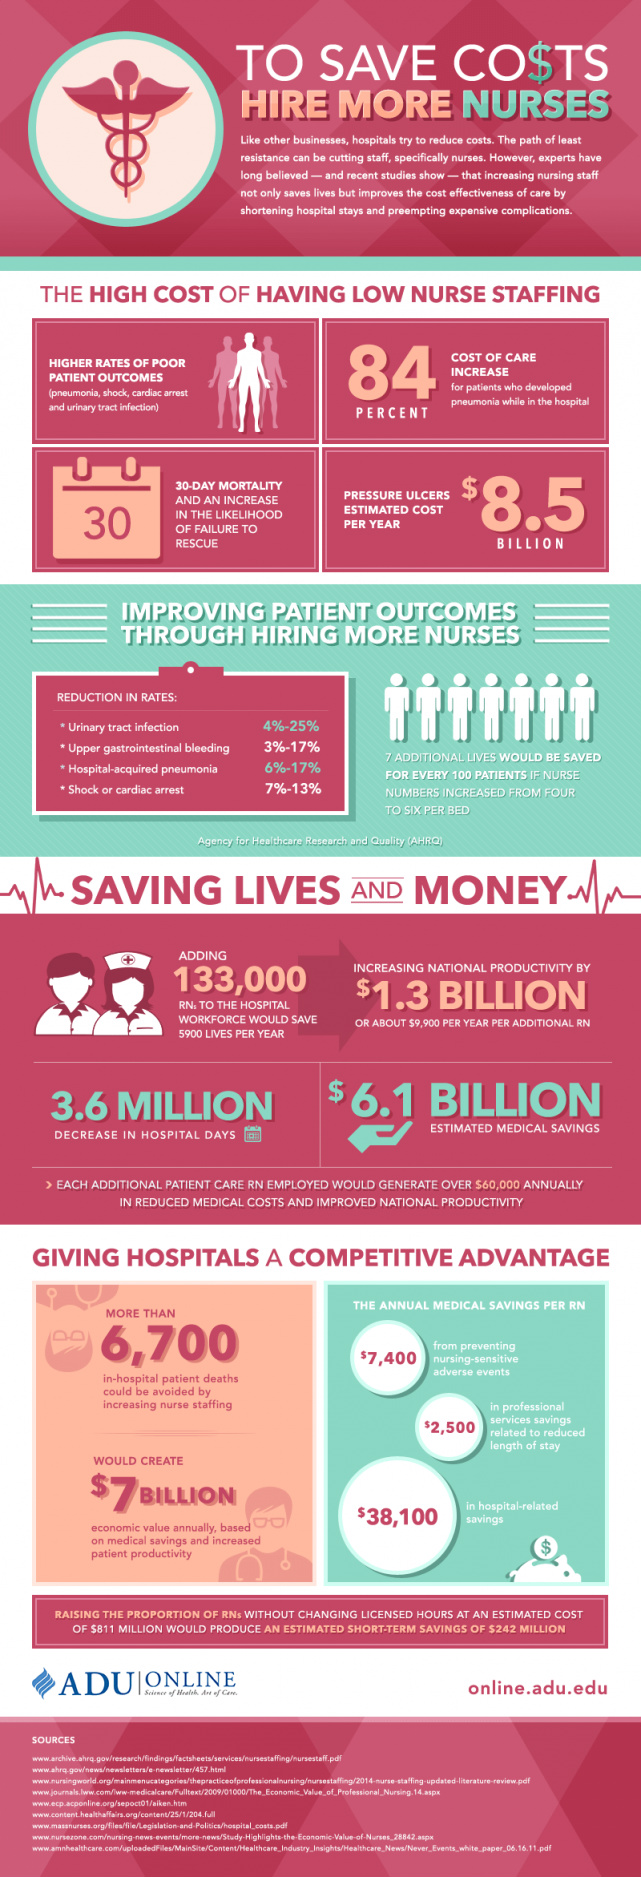 Hire More Nurses To Save On Costs [Infographic]